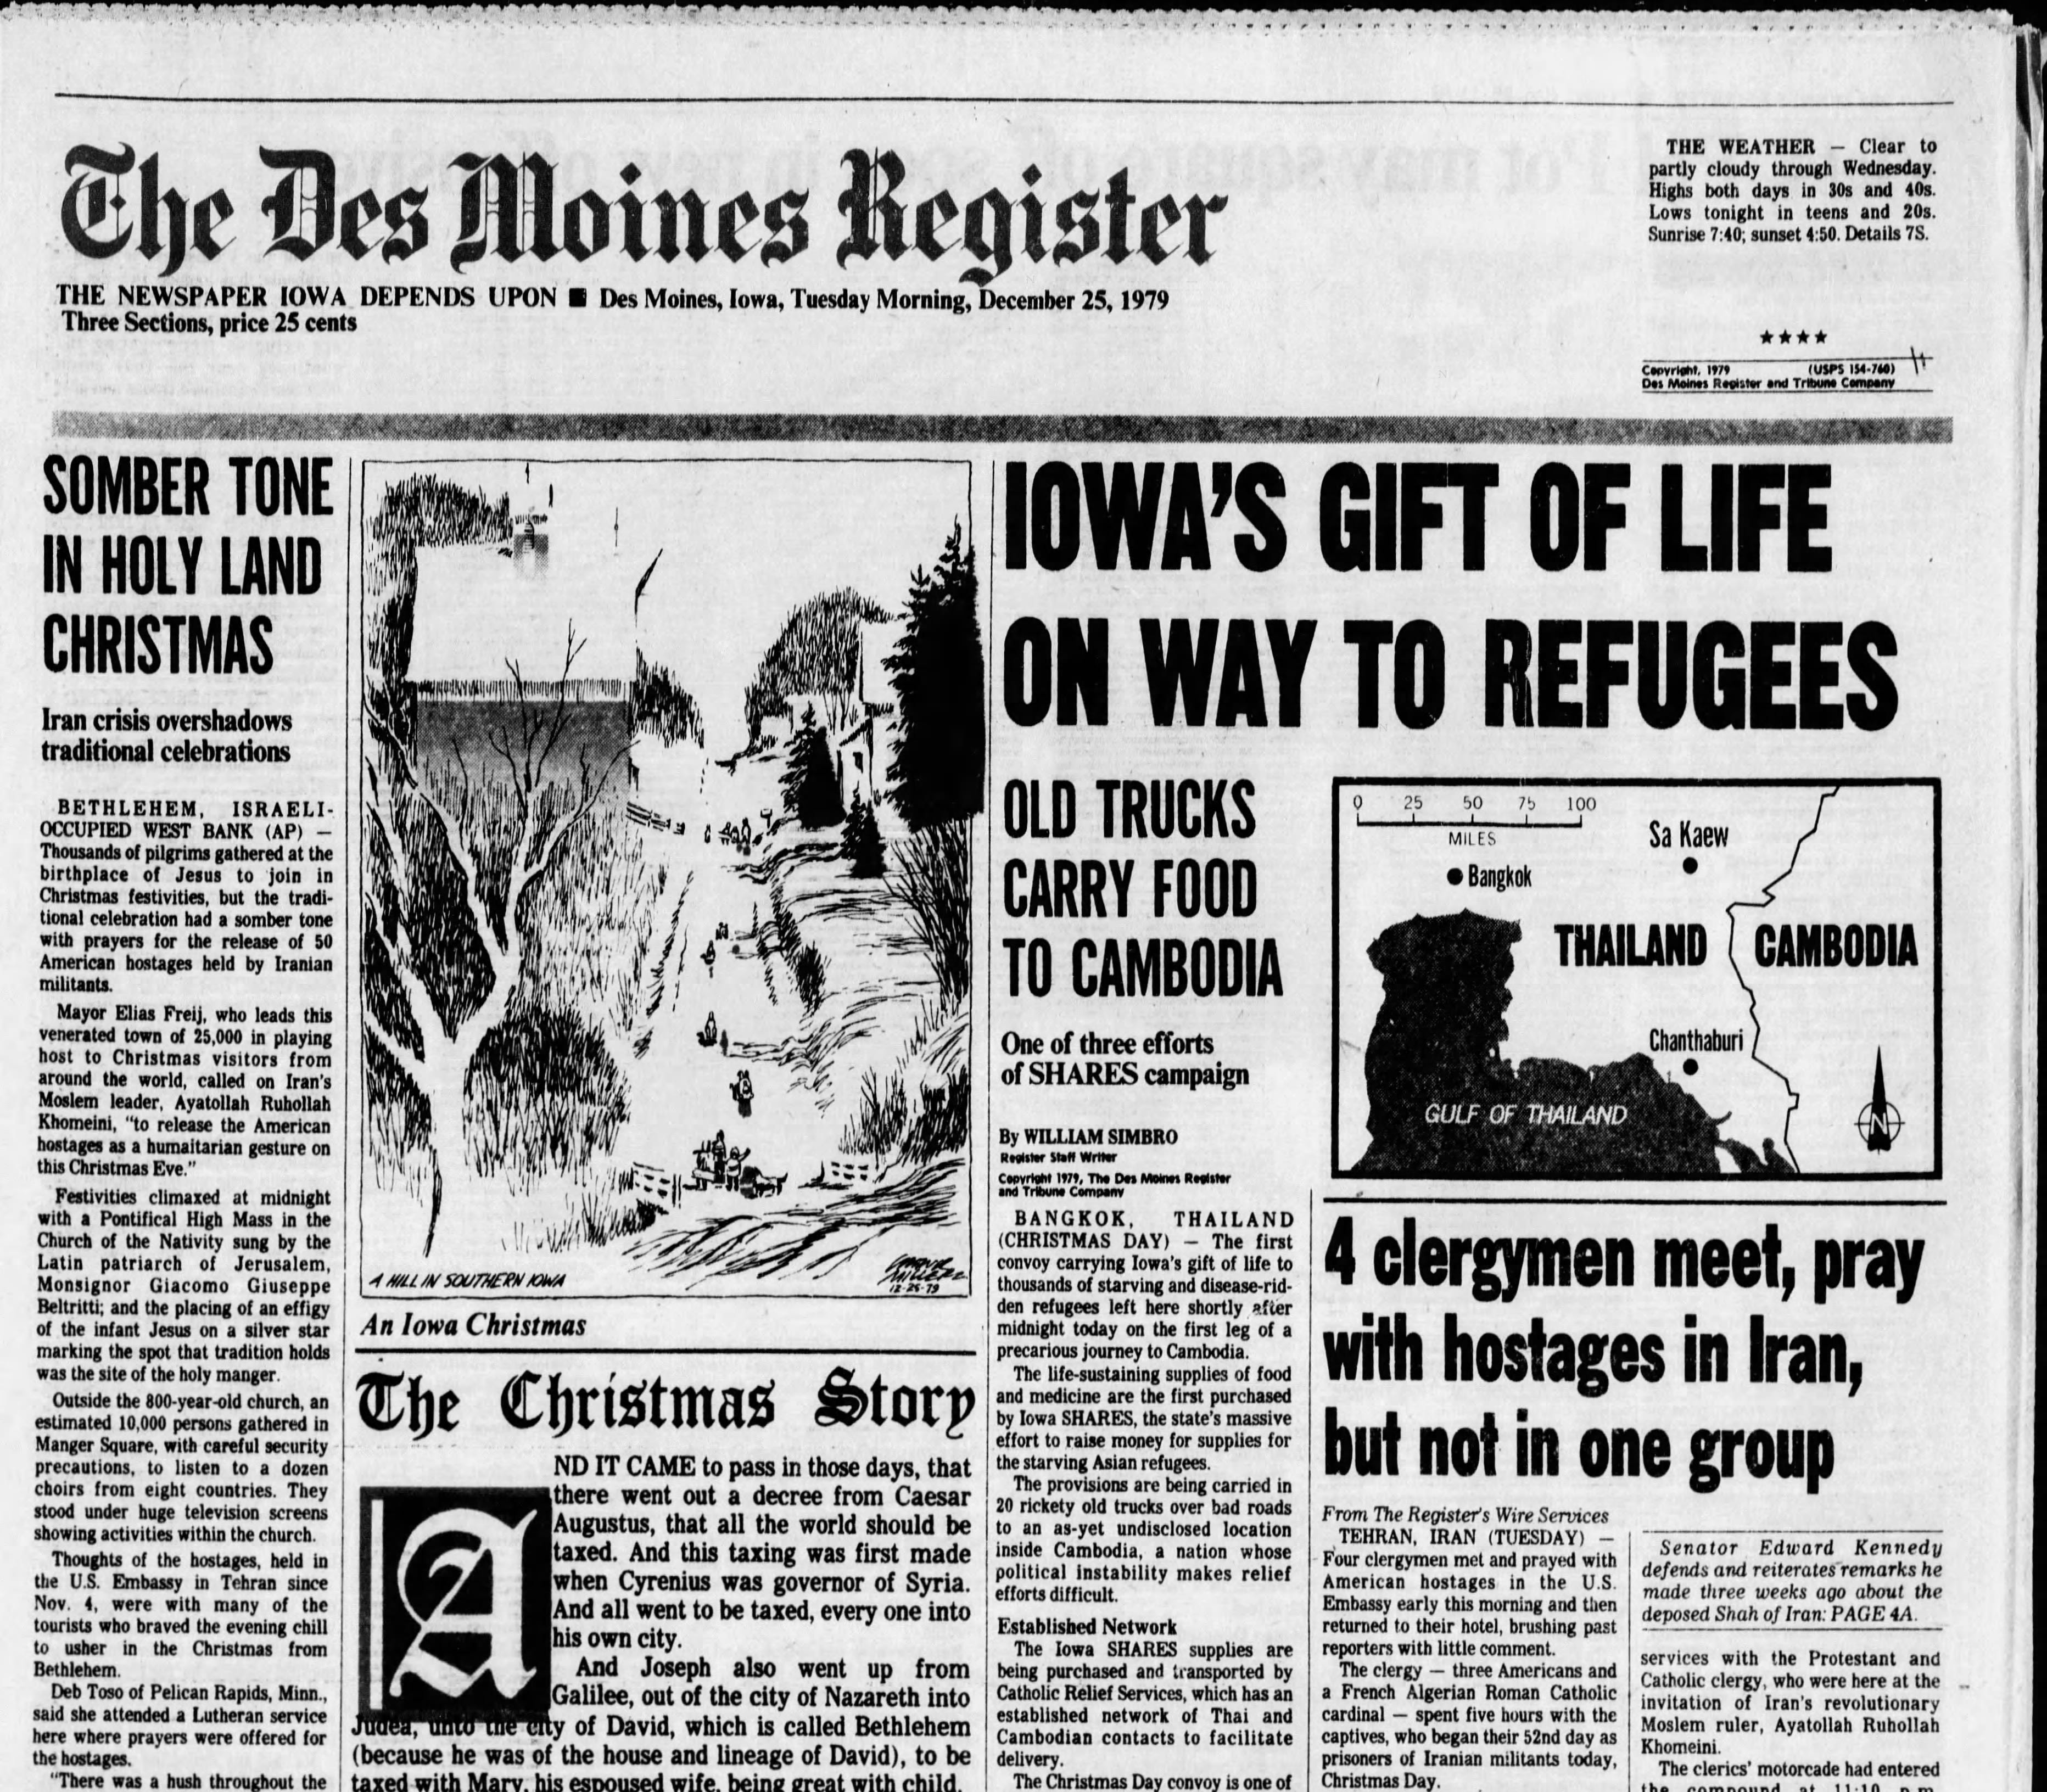 Iowans learn the Iowa SHARES program donations reached Cambodian refugees on Christmas morning 1979.